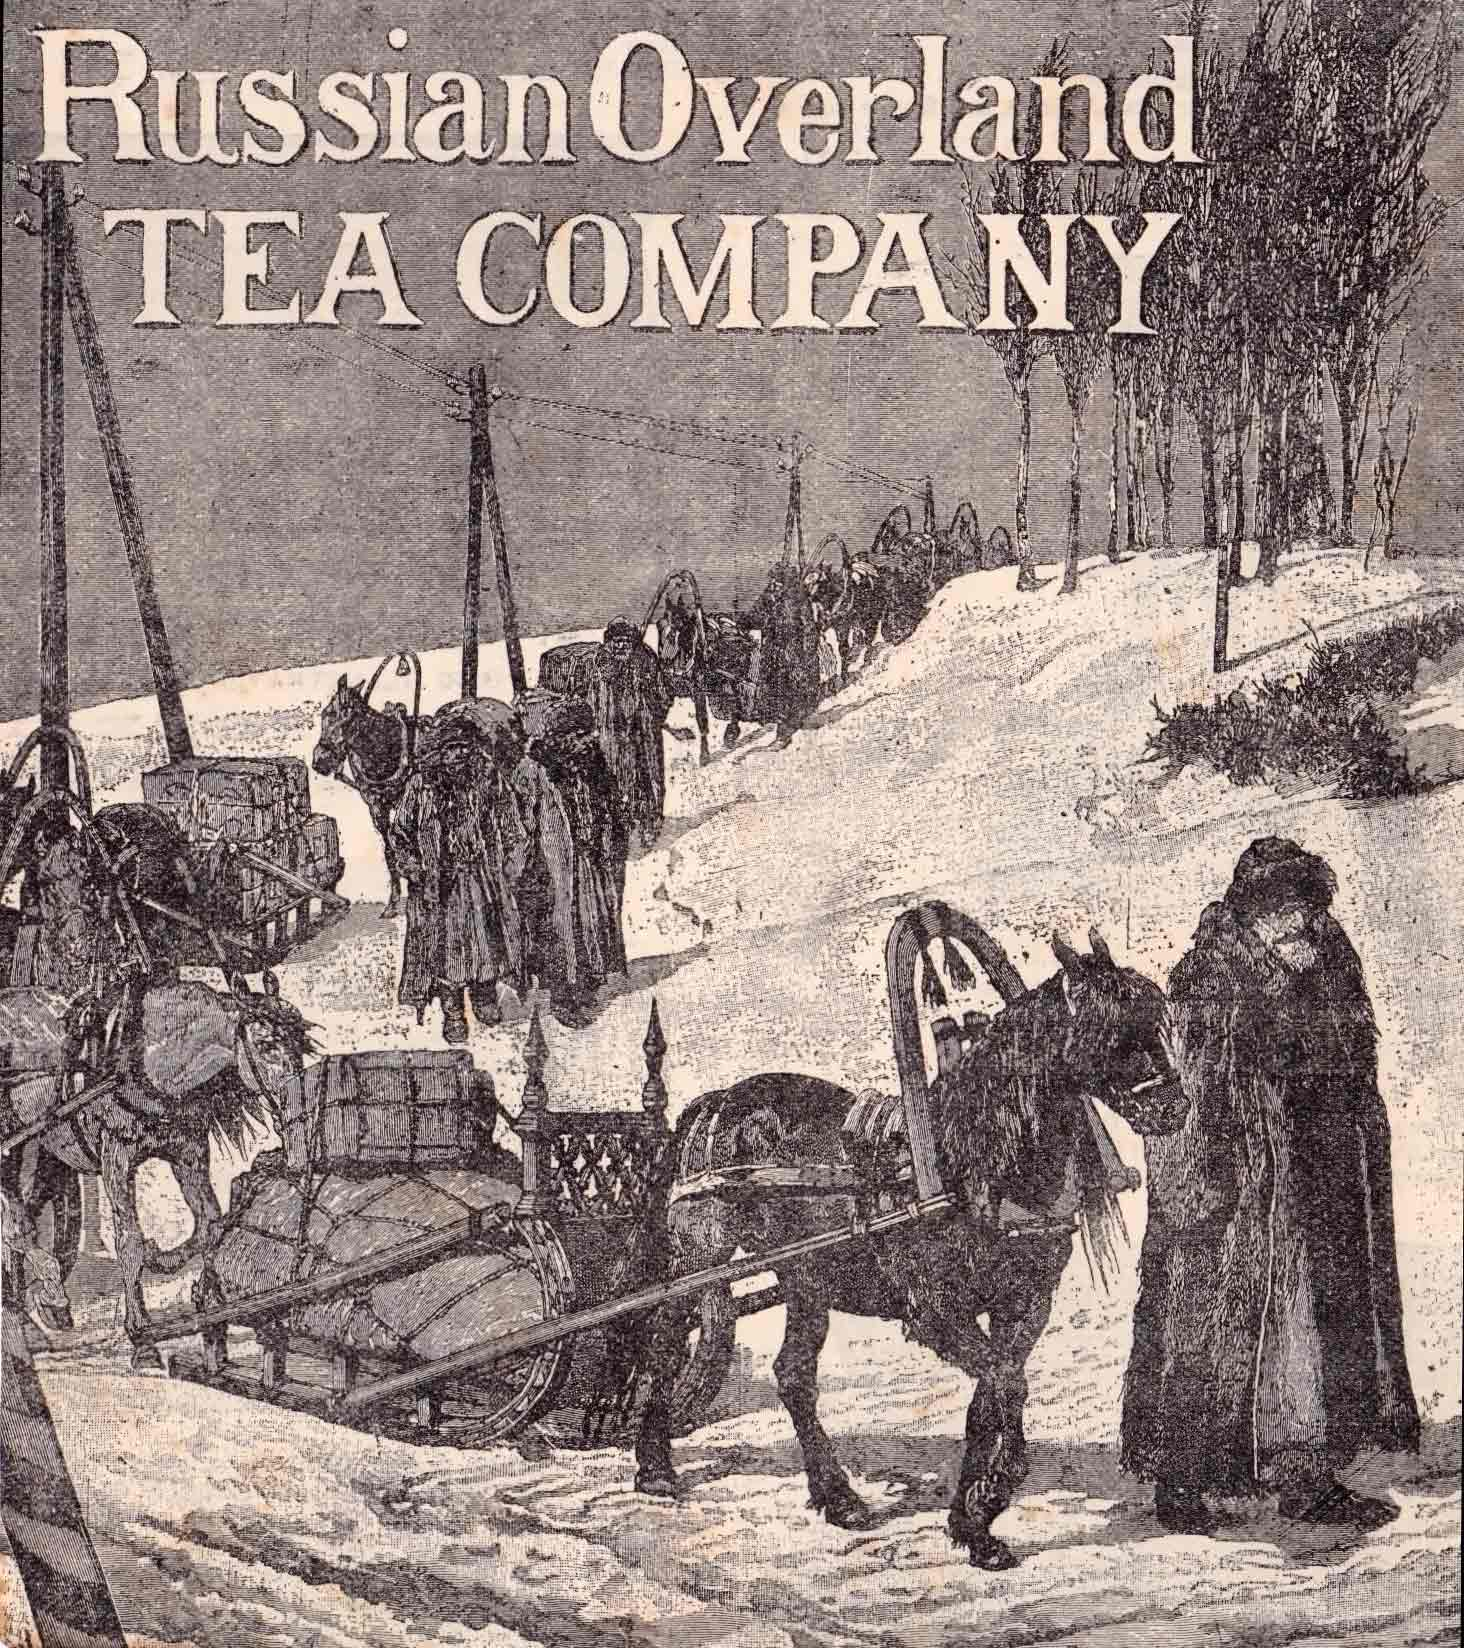 Image of Russian Overland Tea Company